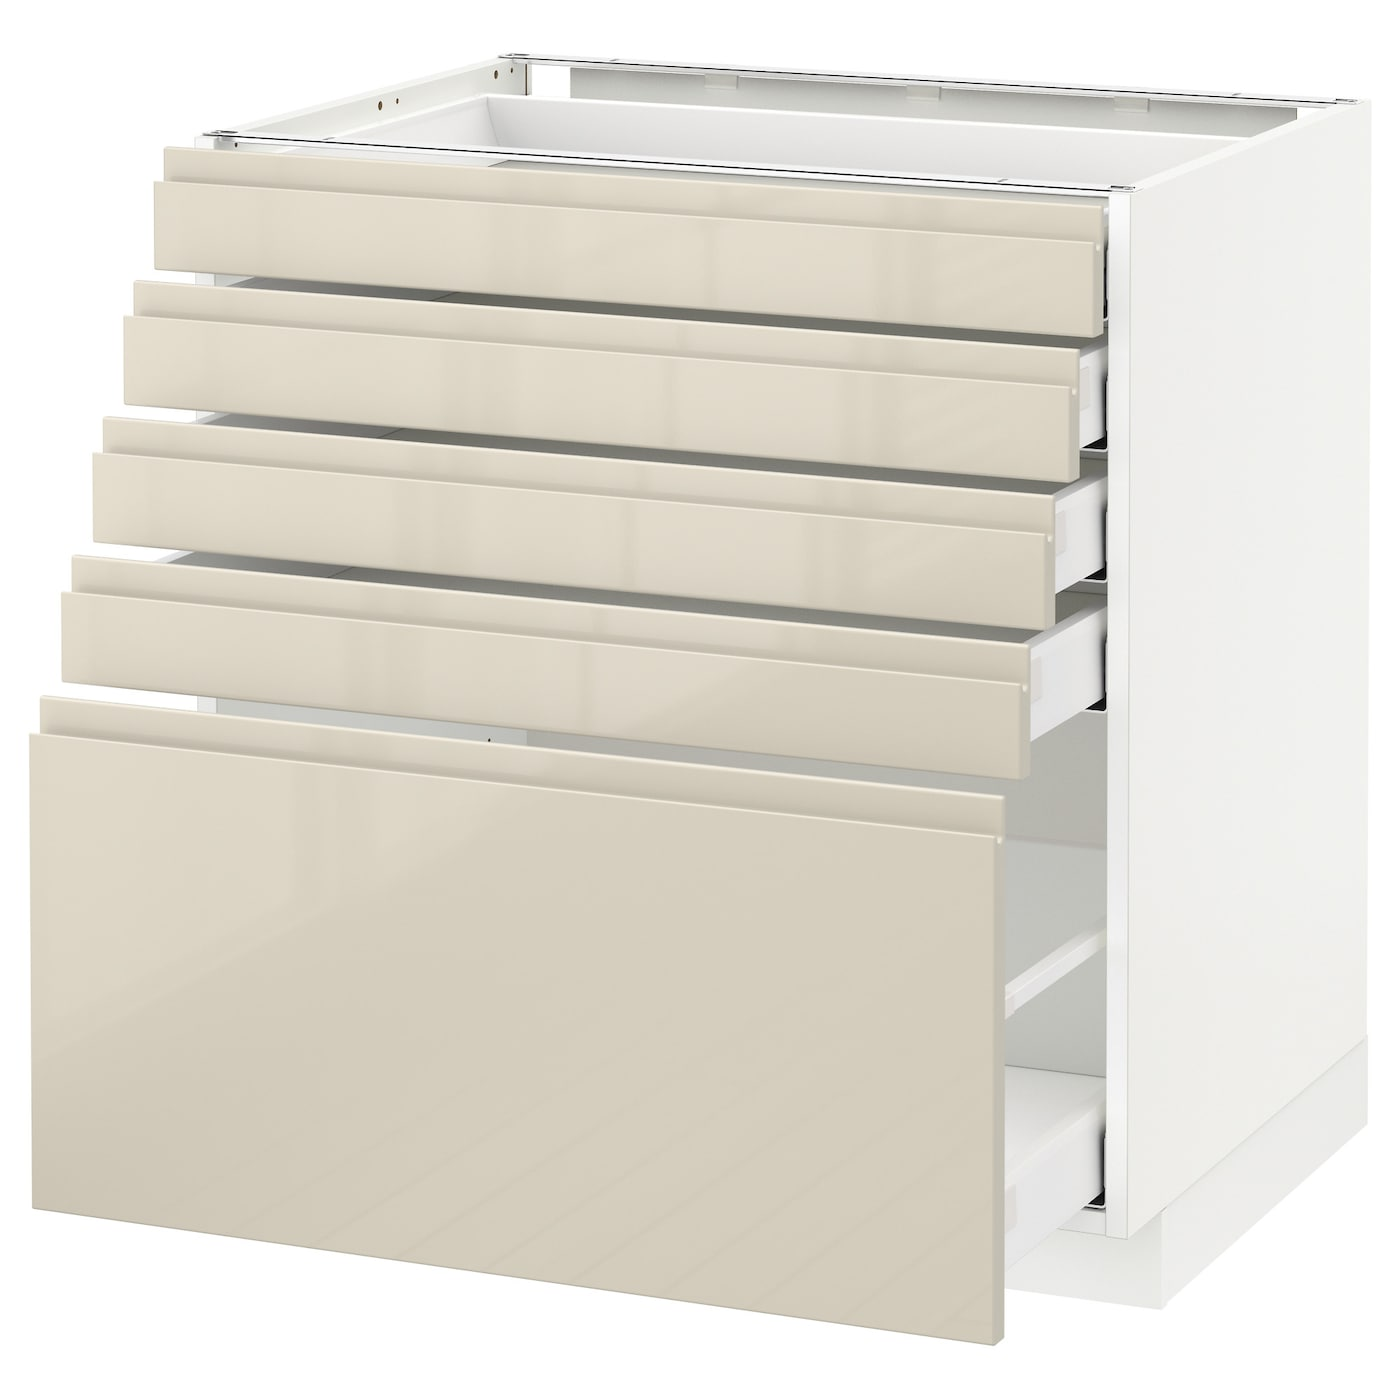 Metod maximera base cabinet with 5 drawers white voxtorp for White gloss kitchen base units